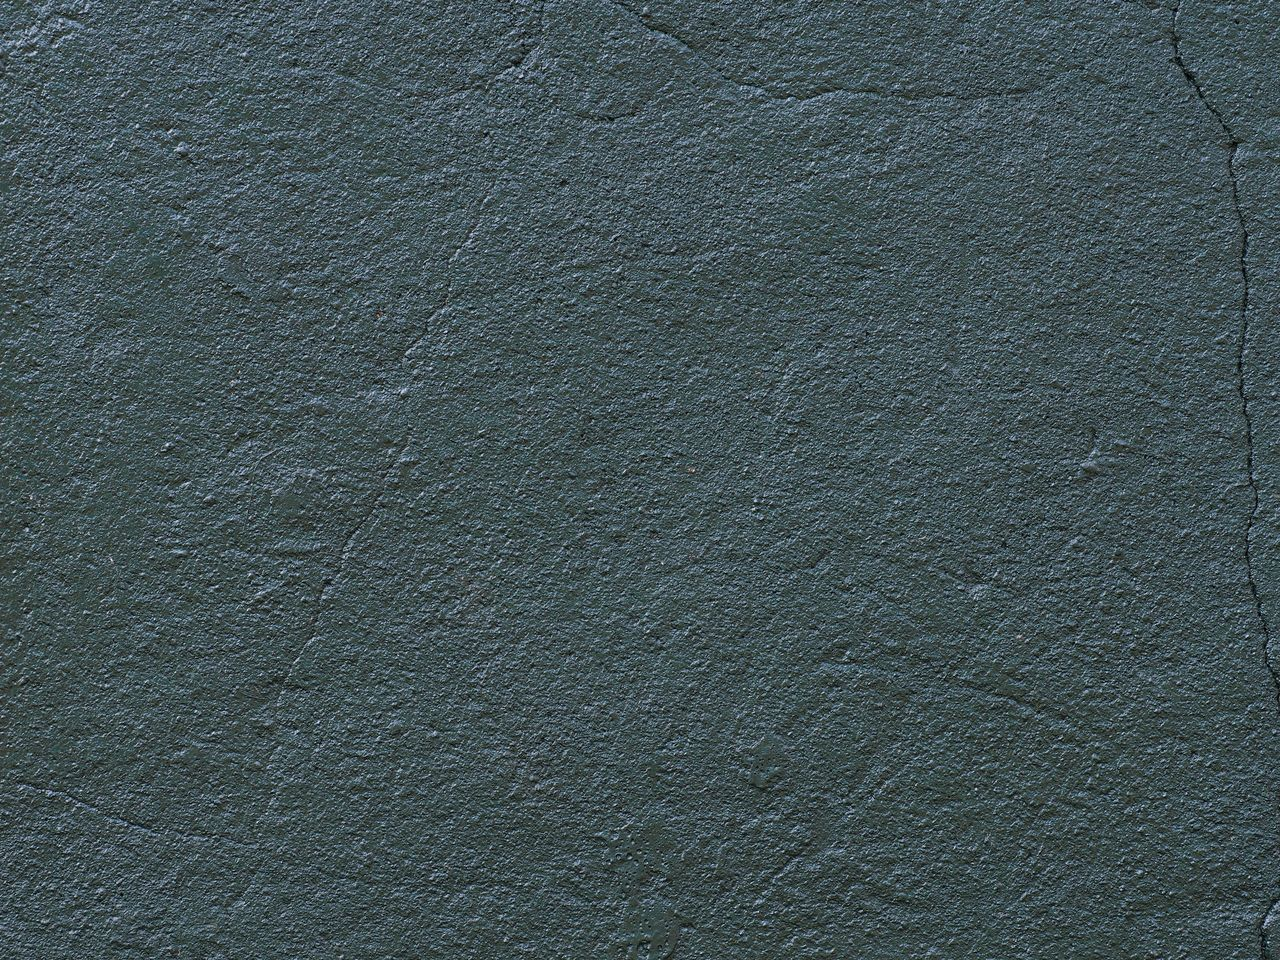 textured, backgrounds, full frame, close-up, rough, no people, pattern, material, macro, extreme close-up, gray, textured effect, abstract, black color, copy space, built structure, architecture, dark, blank, leather, clean, surface level, concrete